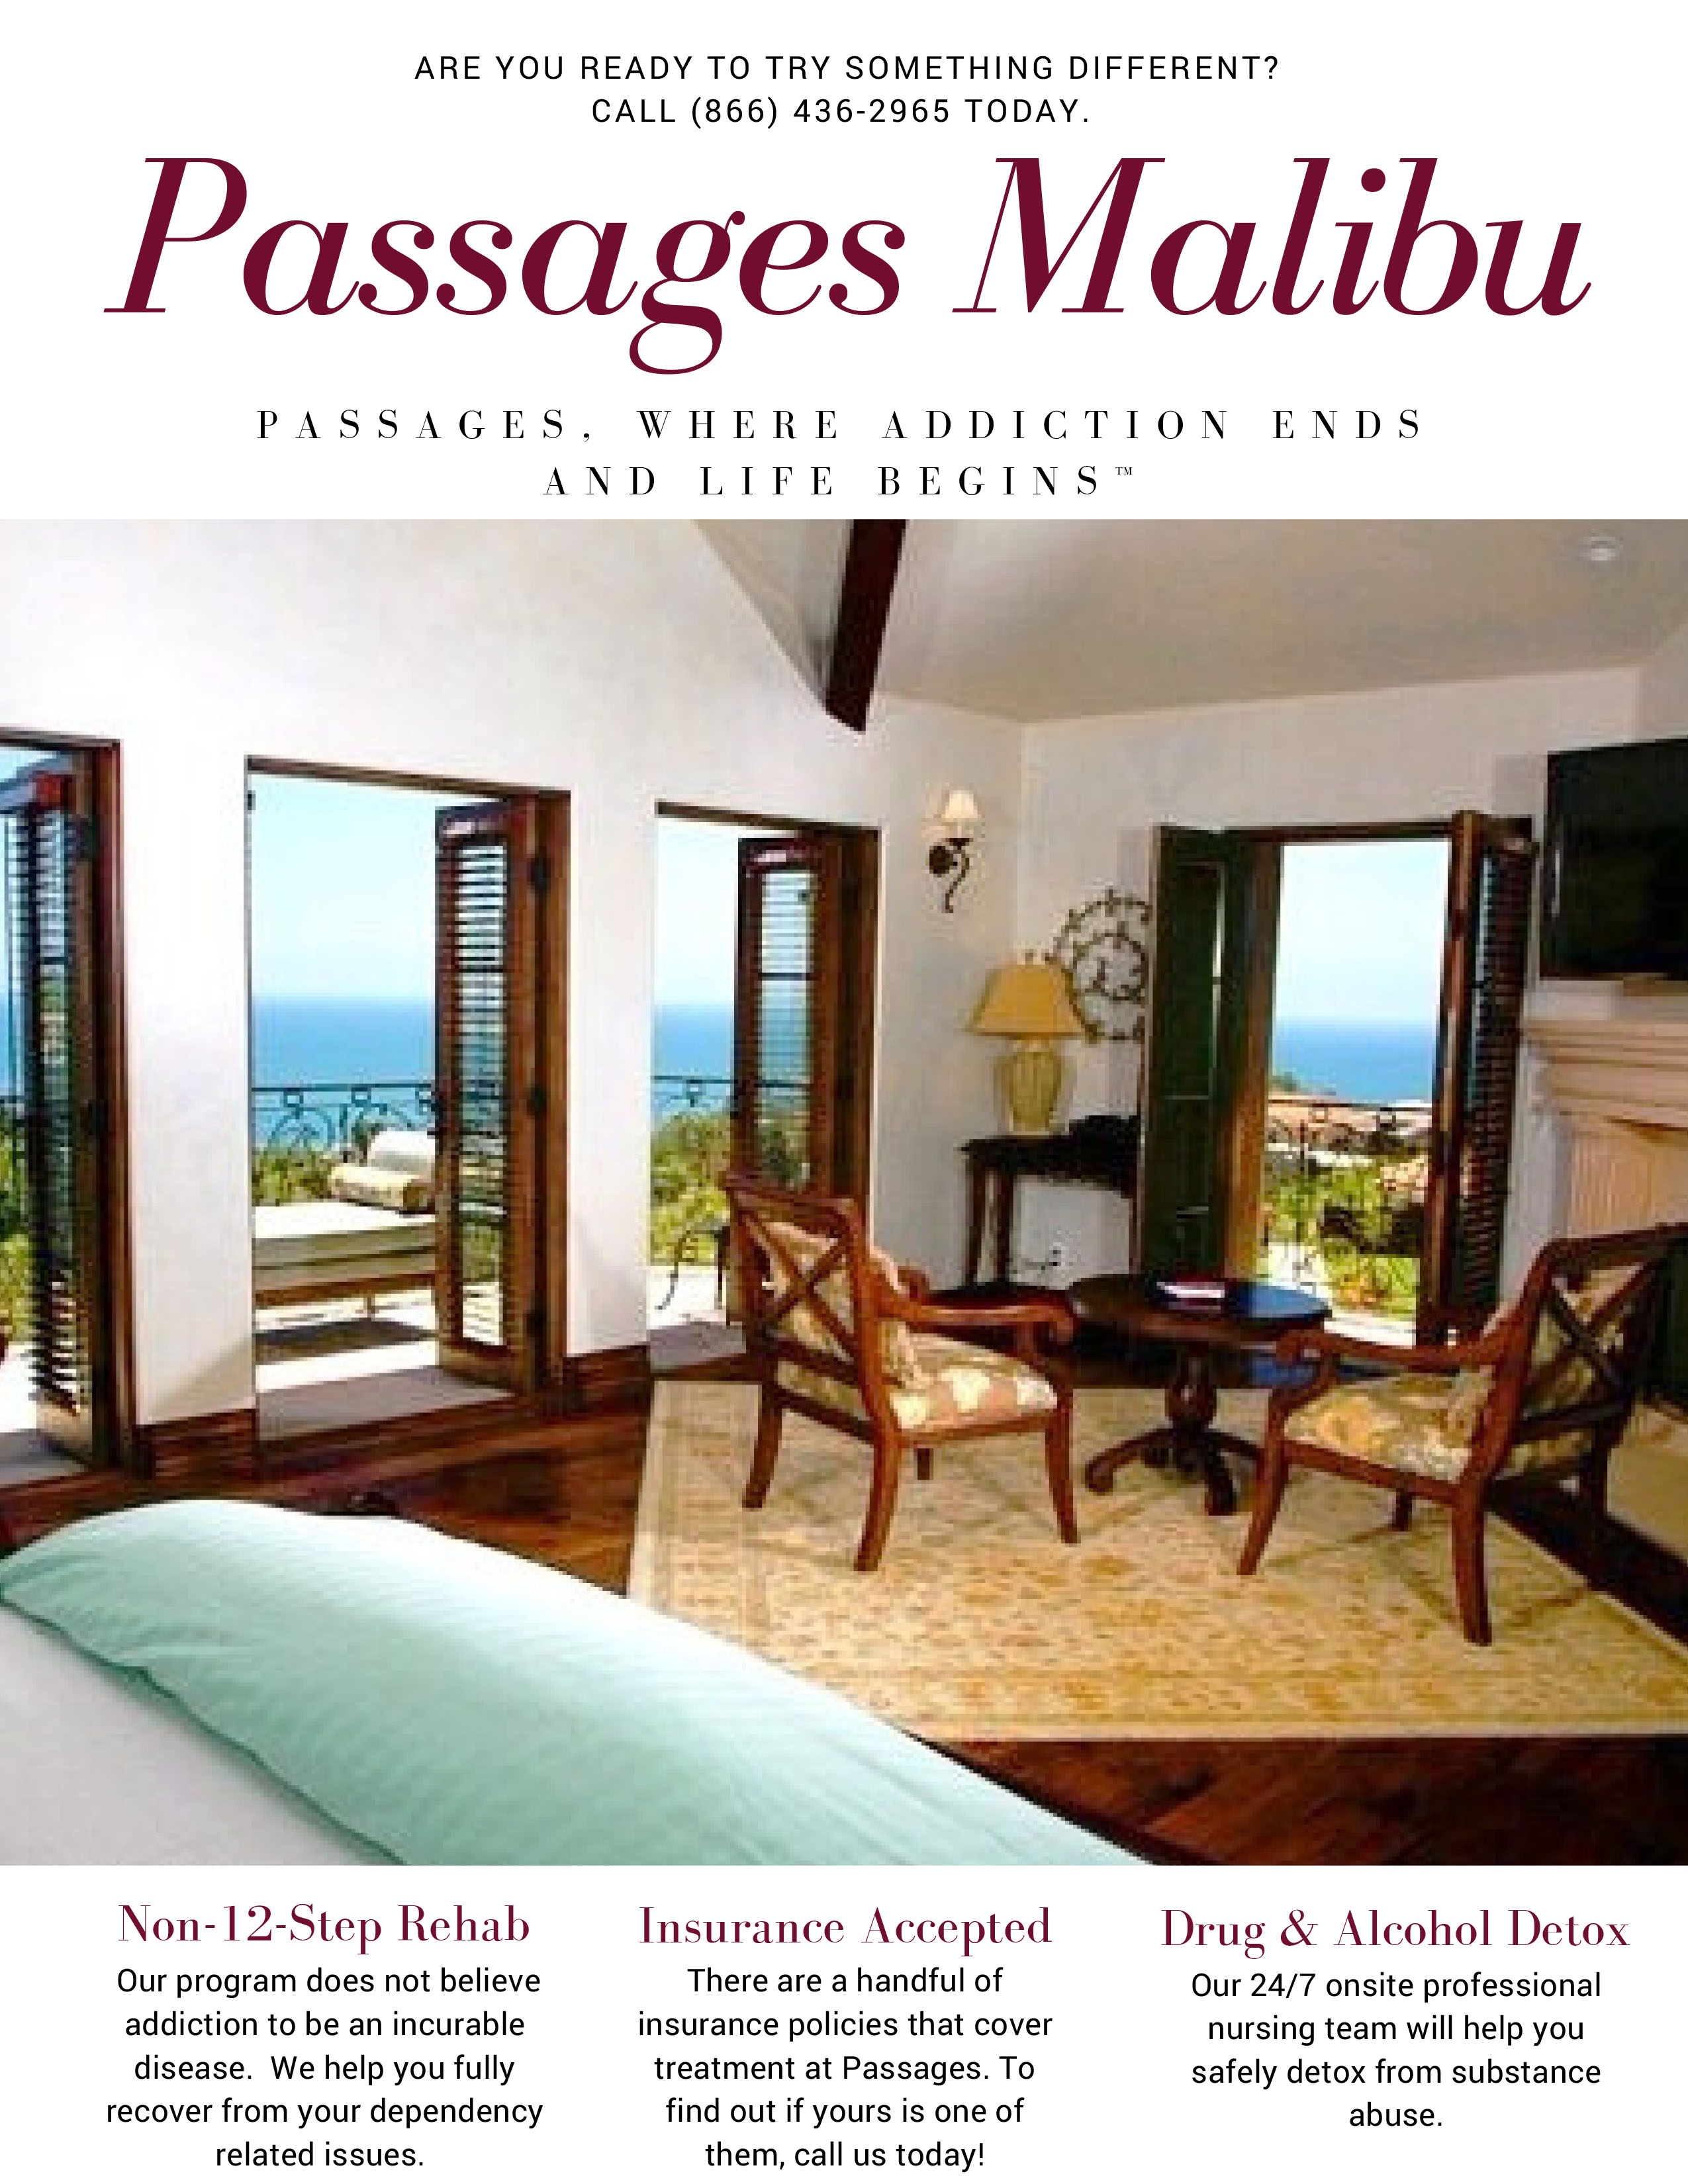 How to prepare for inpatient rehab passages reflections blog for Passages malibu